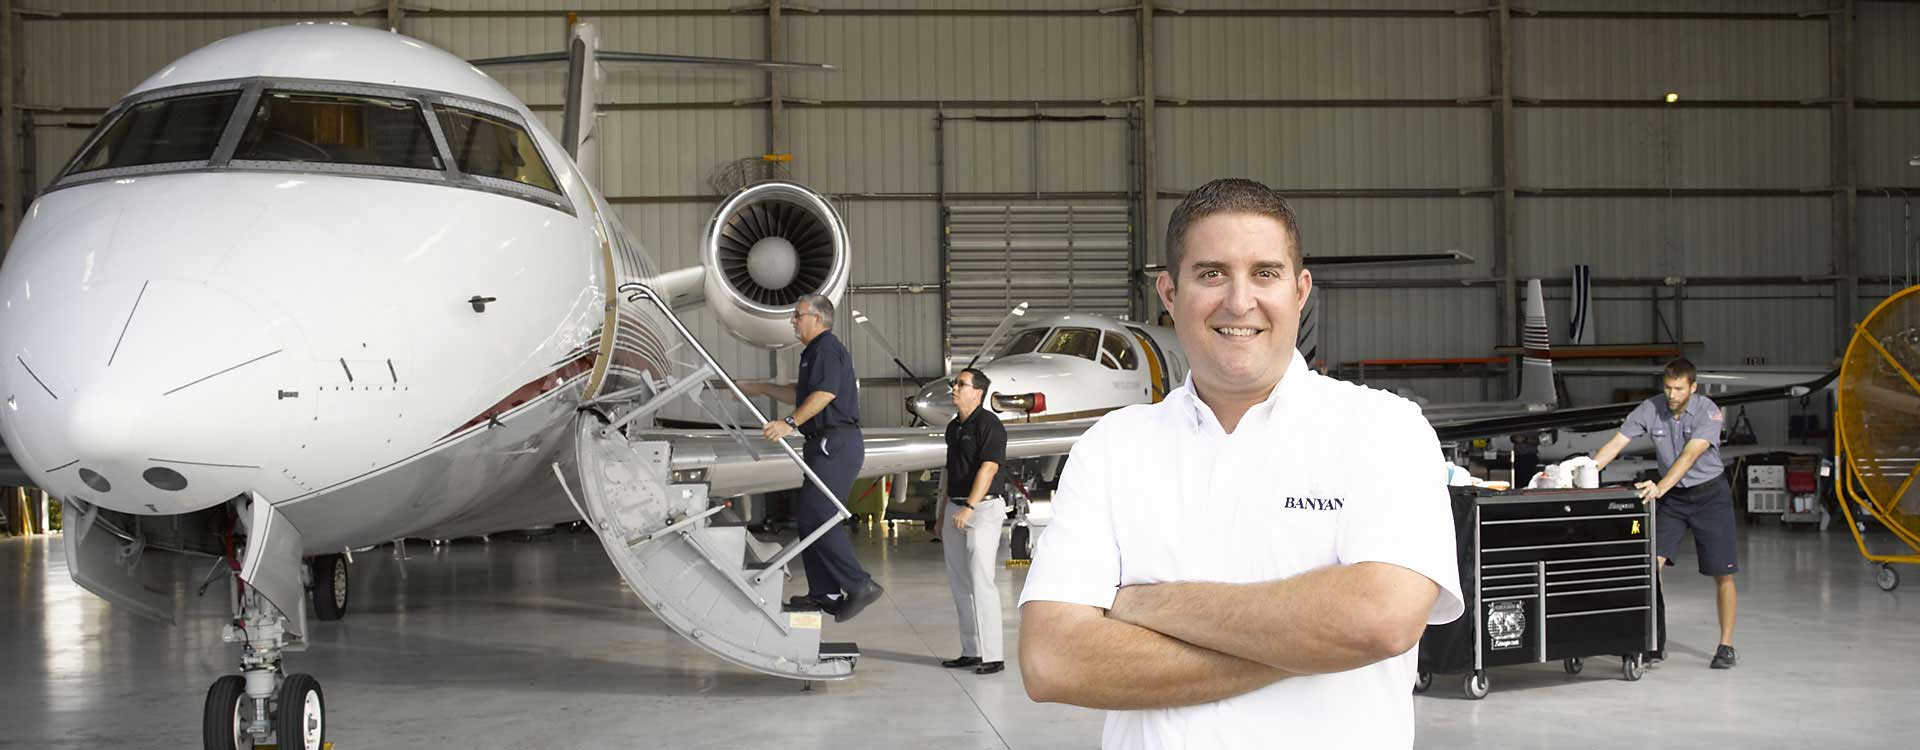 Airframe and Engine Services